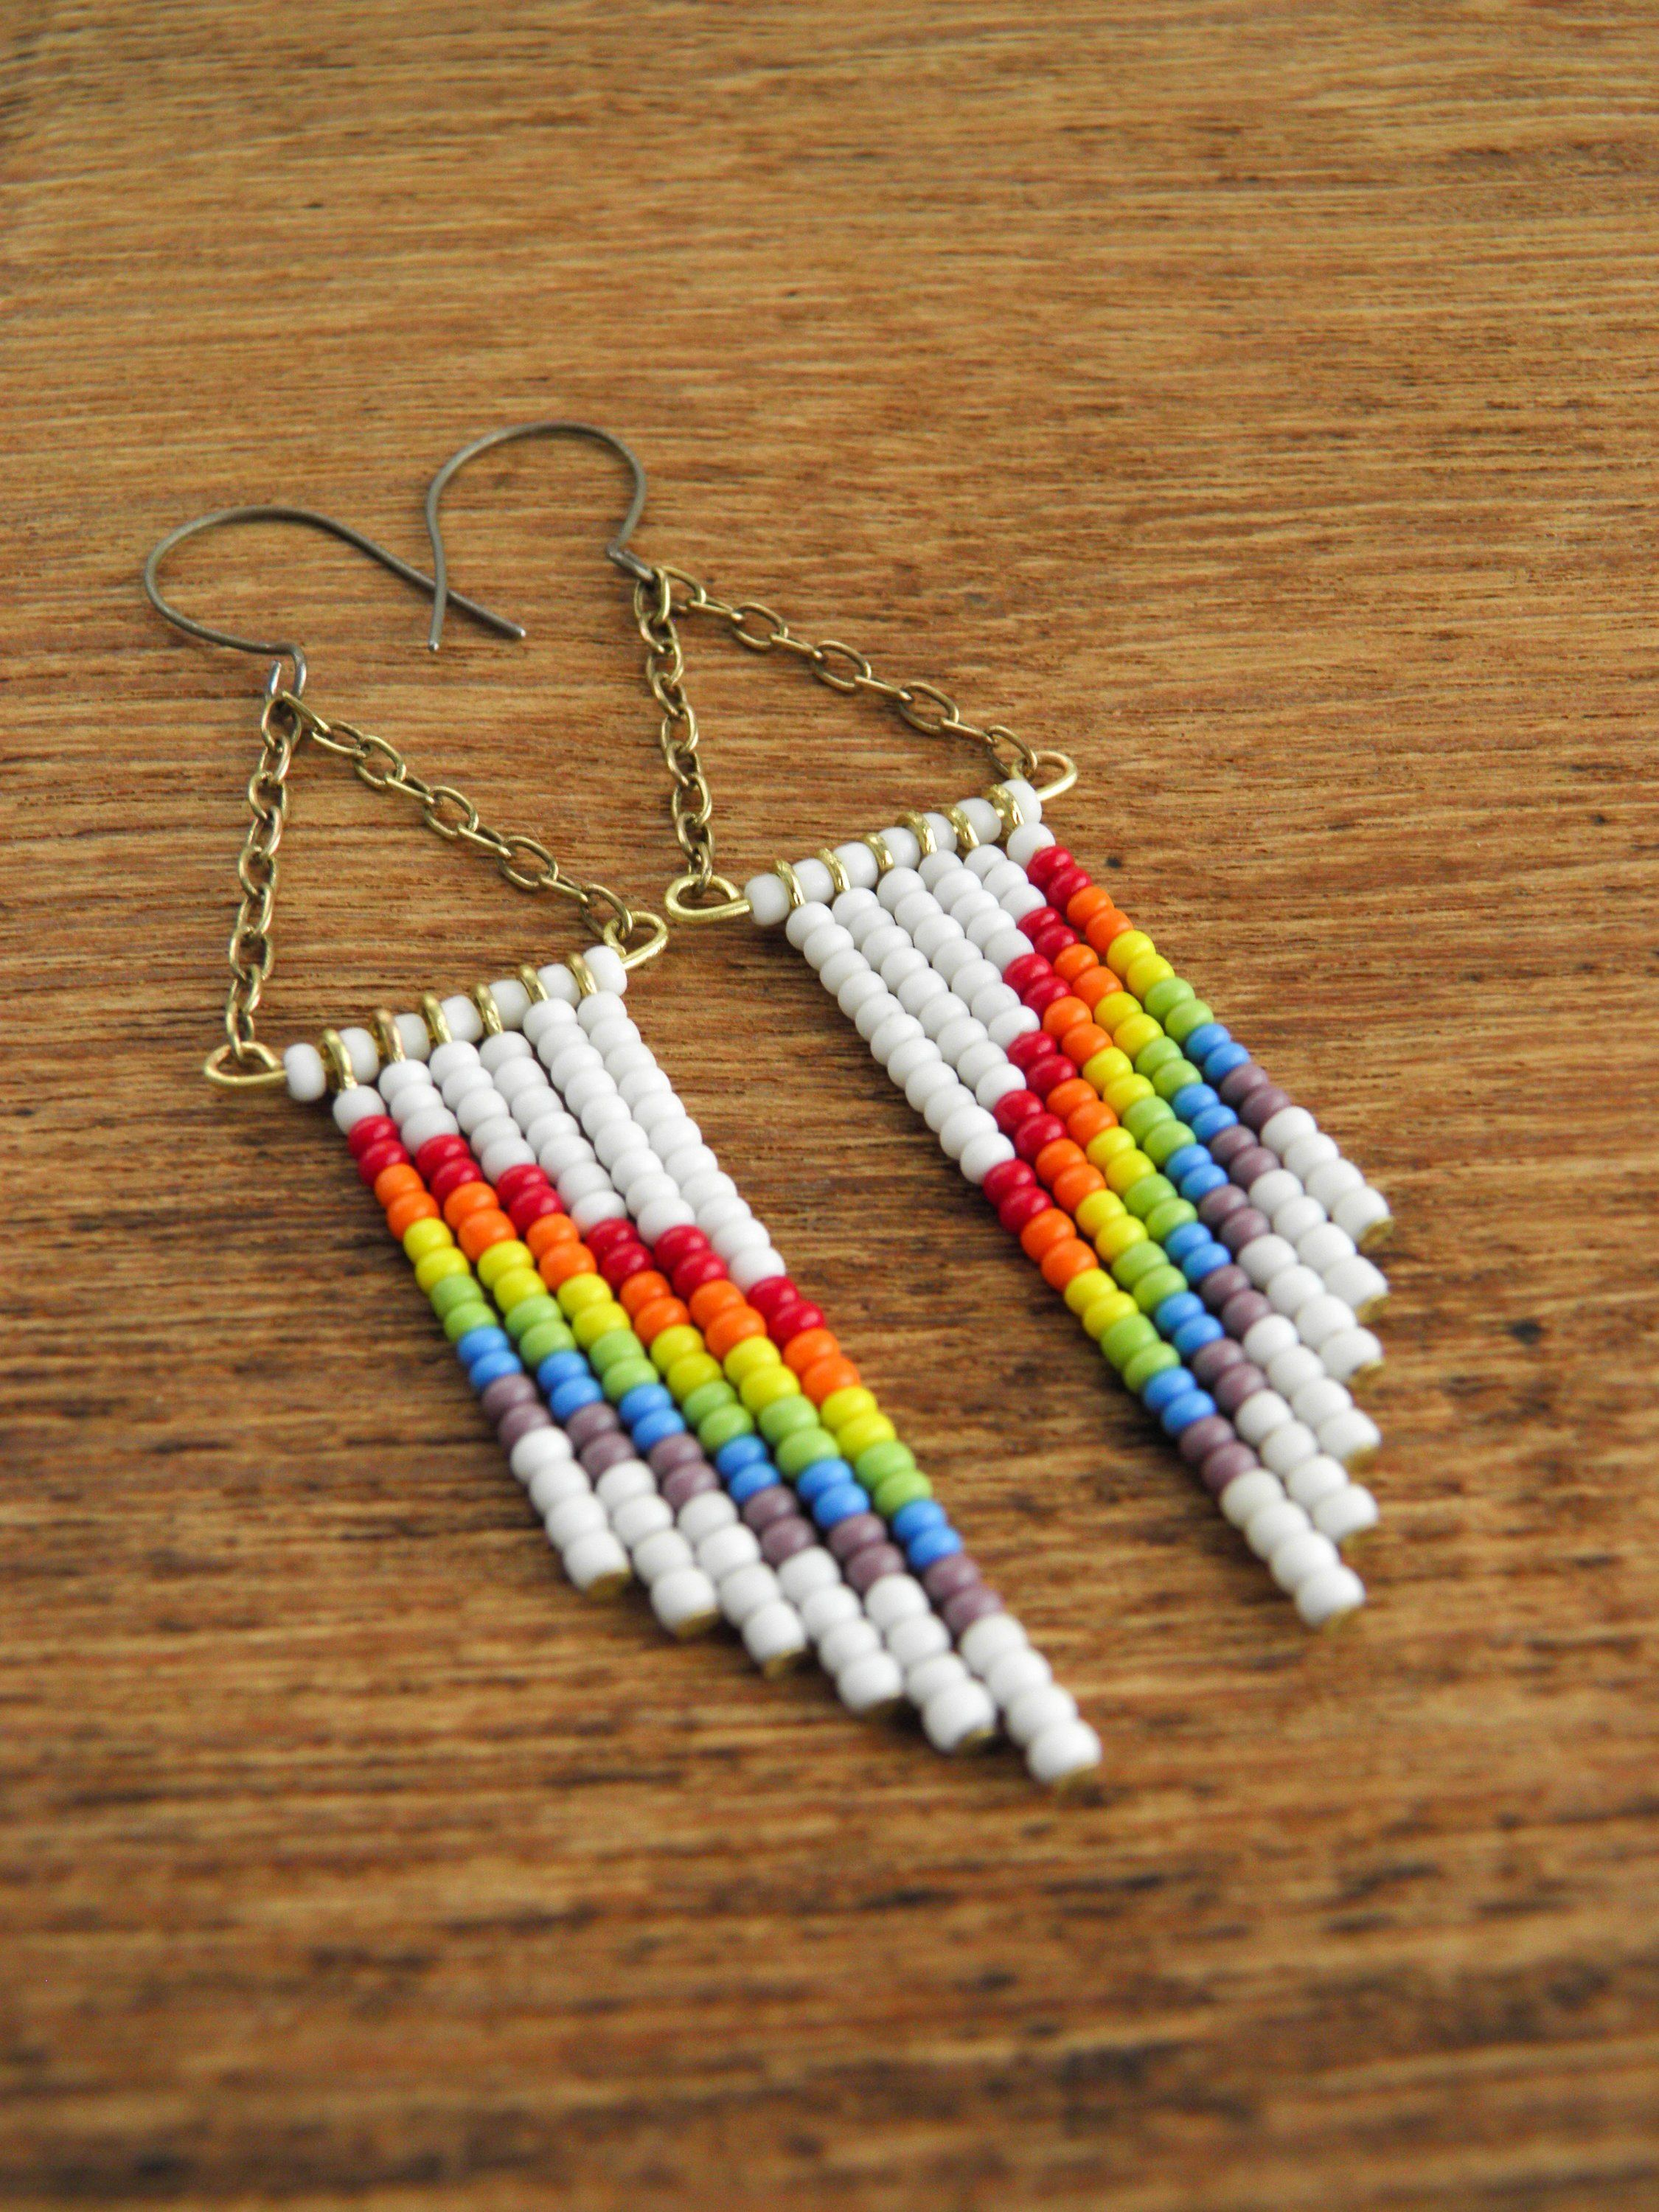 1790ec8c1f5f29 Rainbow earrings,Seed bead chevron earrings,Boho fringe earrings,Summer  Boho earrings,Seed bead drop earrings,Lgbtq earrings,Gift for her